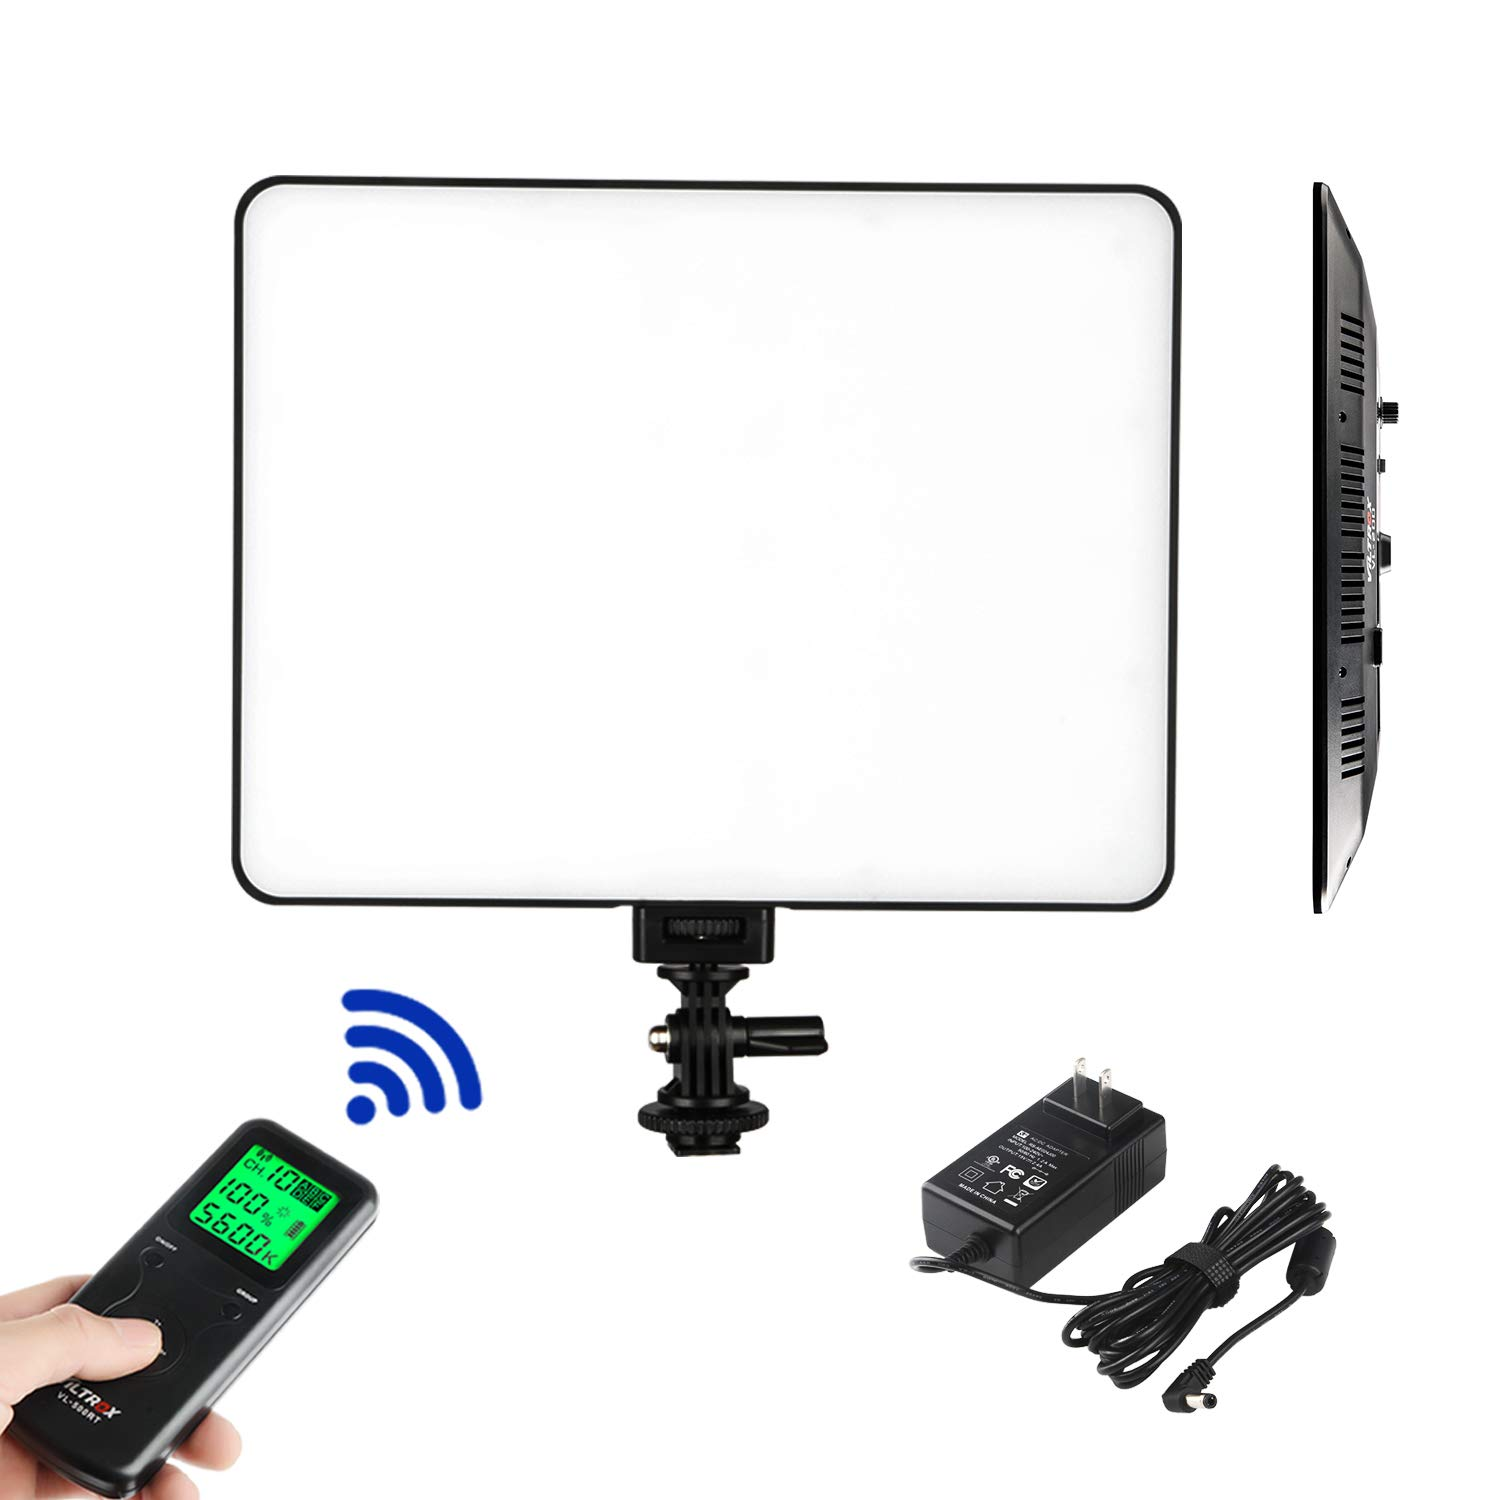 VILTROX VL-200T Ultra Thin Bi-Color Dimmable LED Video Light, Panel Light for Interview YouTube Outdoor Studio Portrait Photography Lighting with 3300K-5600K, CRI 95+ and Remote Controller …